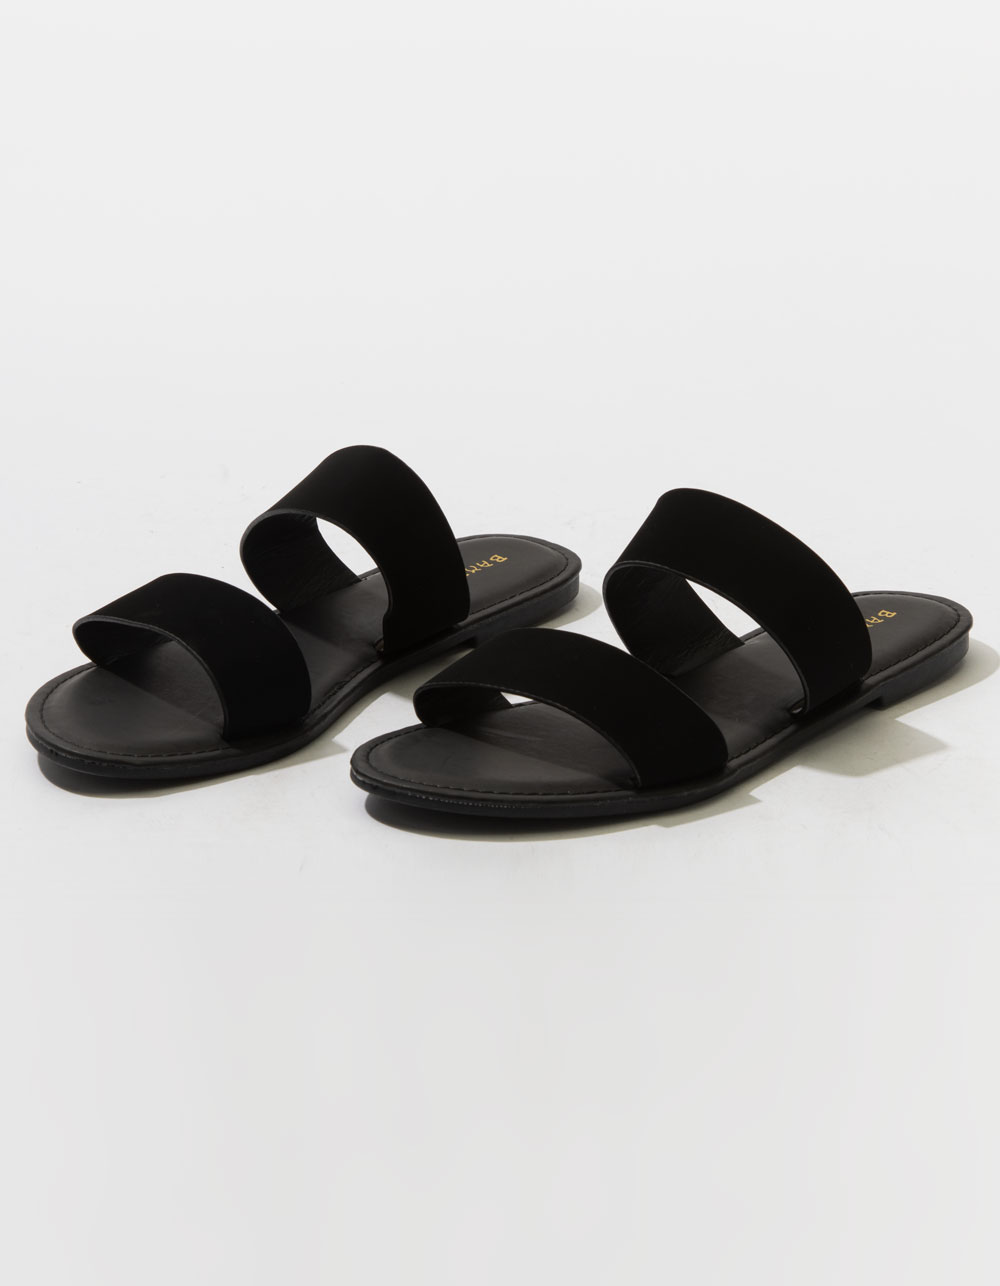 Image of BAMBOO DOUBLE STRAP BLACK SANDALS